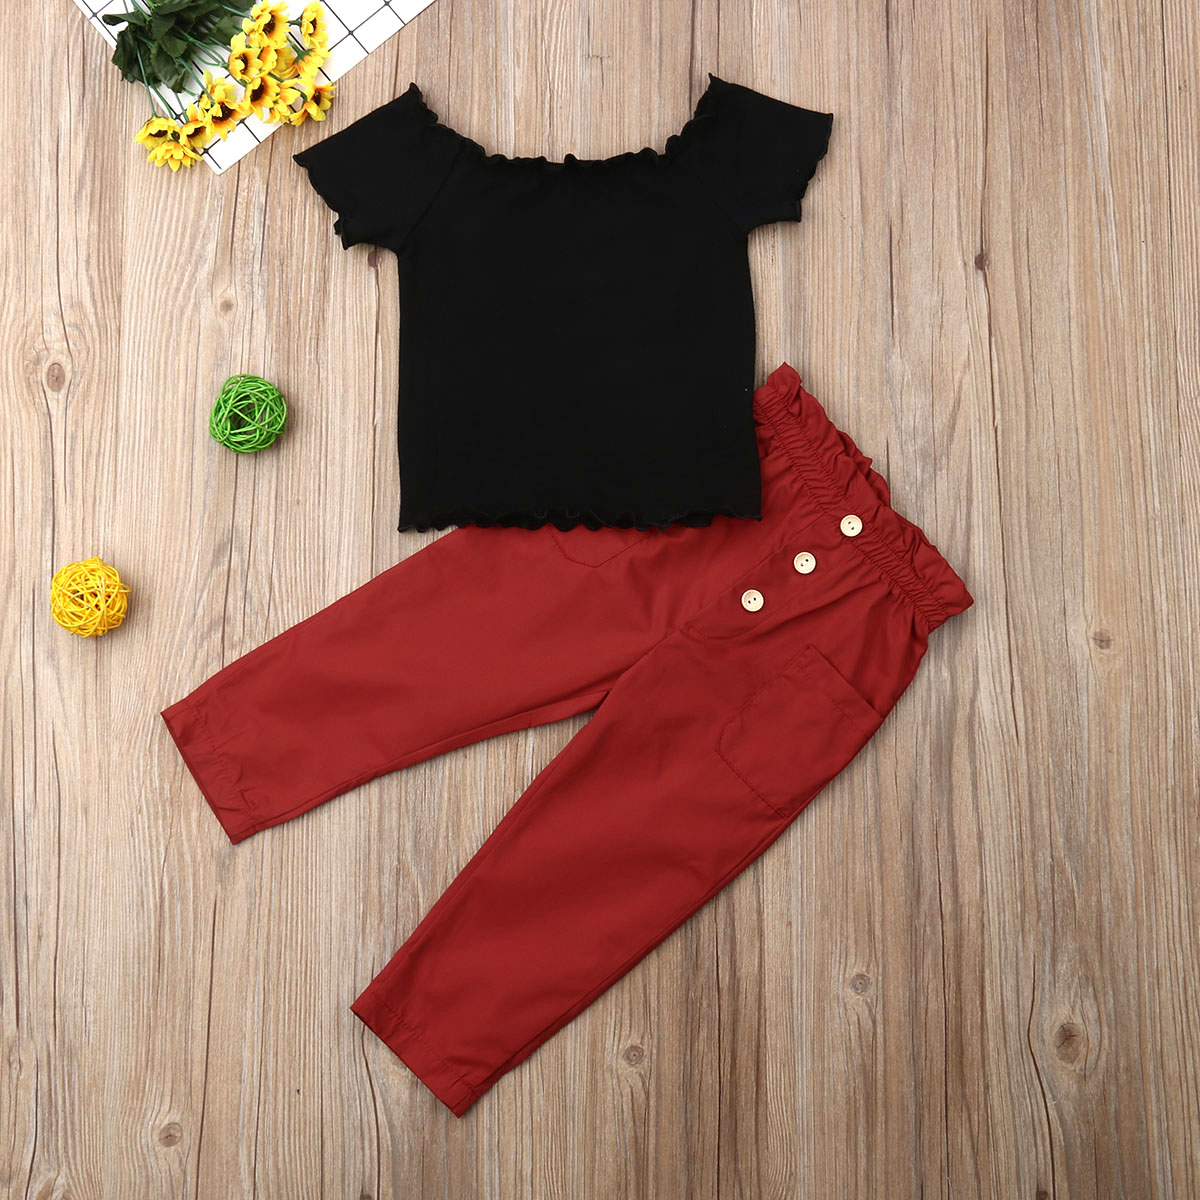 Pudcoco Toddler Baby Girl Clothes Solid Color Off Shoulder Ruffle Tops Long Pants 2Pcs Outfits Cotton Clothes